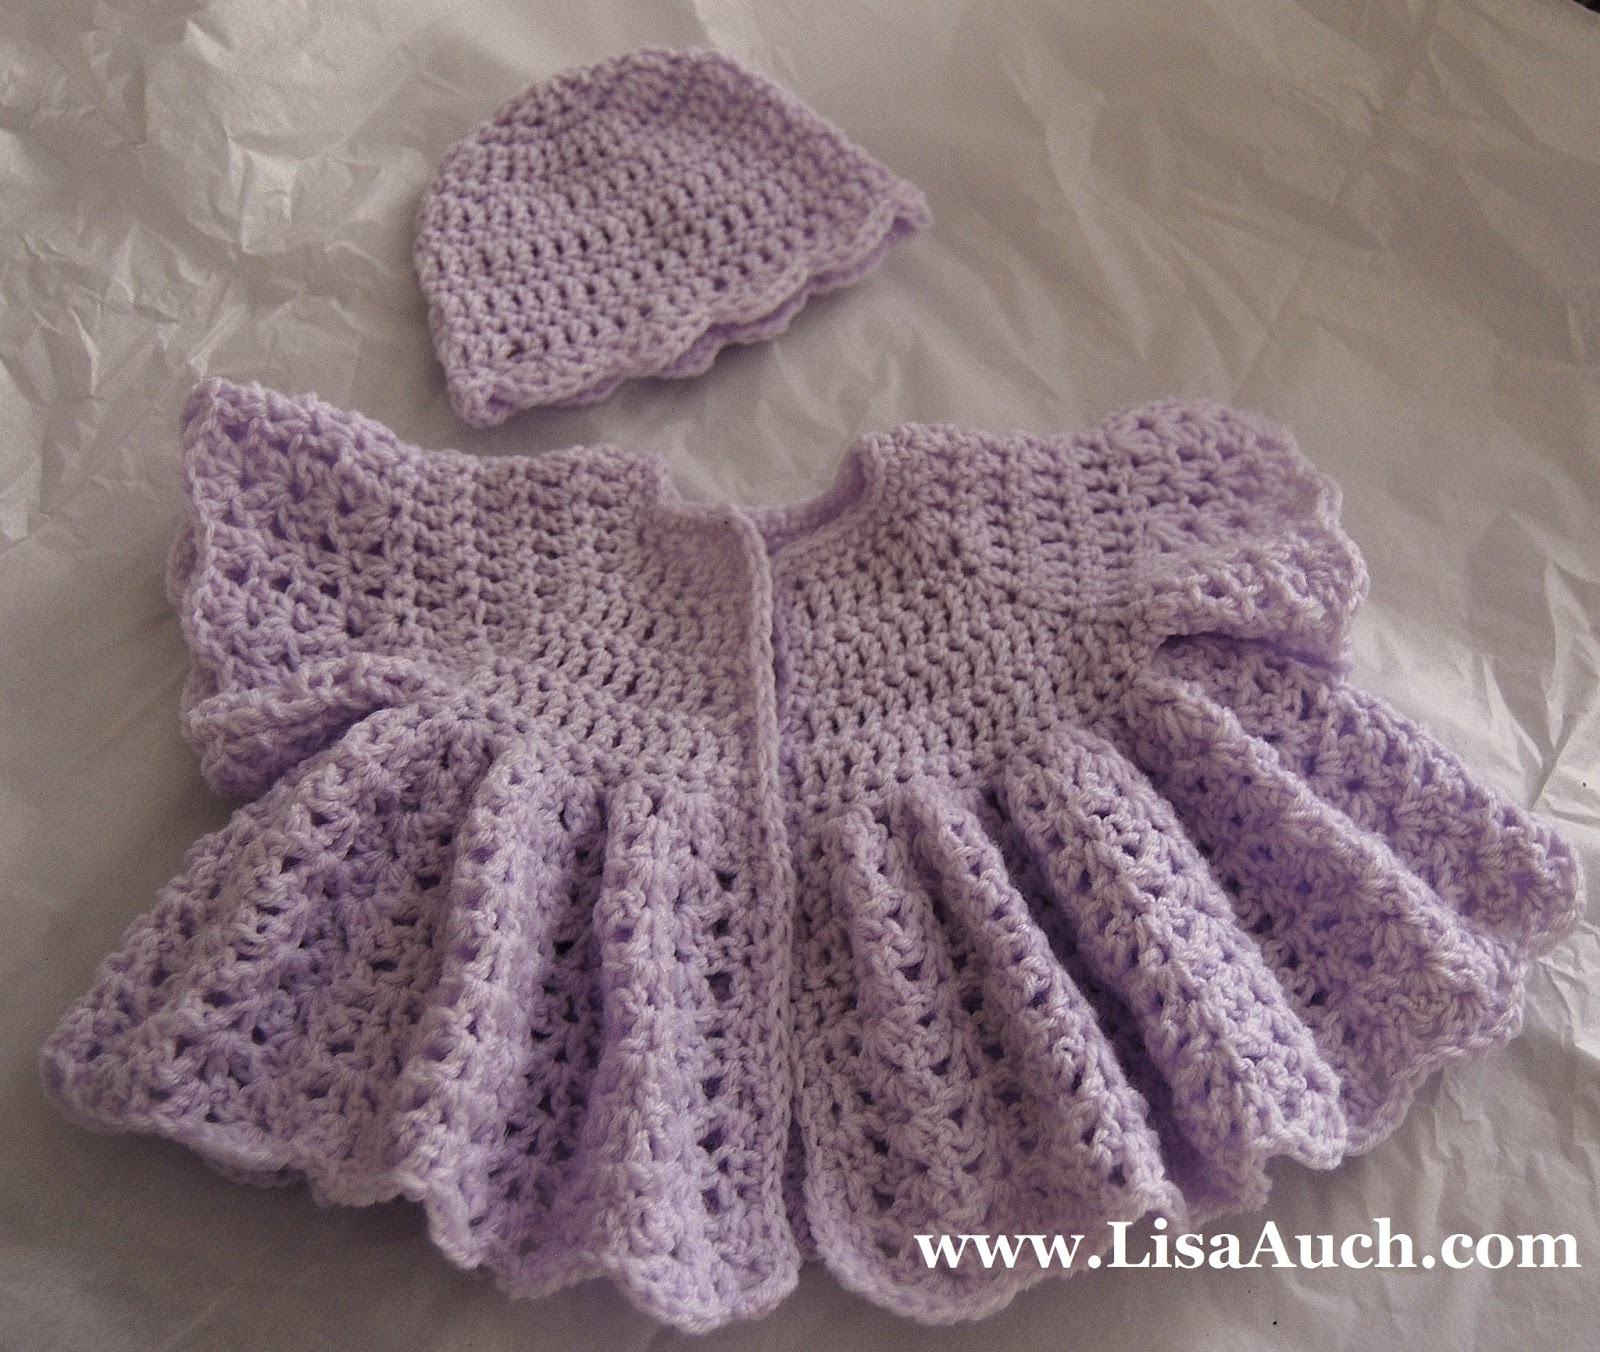 Crochet Newborn Baby Sweater Free Pattern : Free Crochet Pattern Beautiful Vintage Swing Baby Cardigan ...